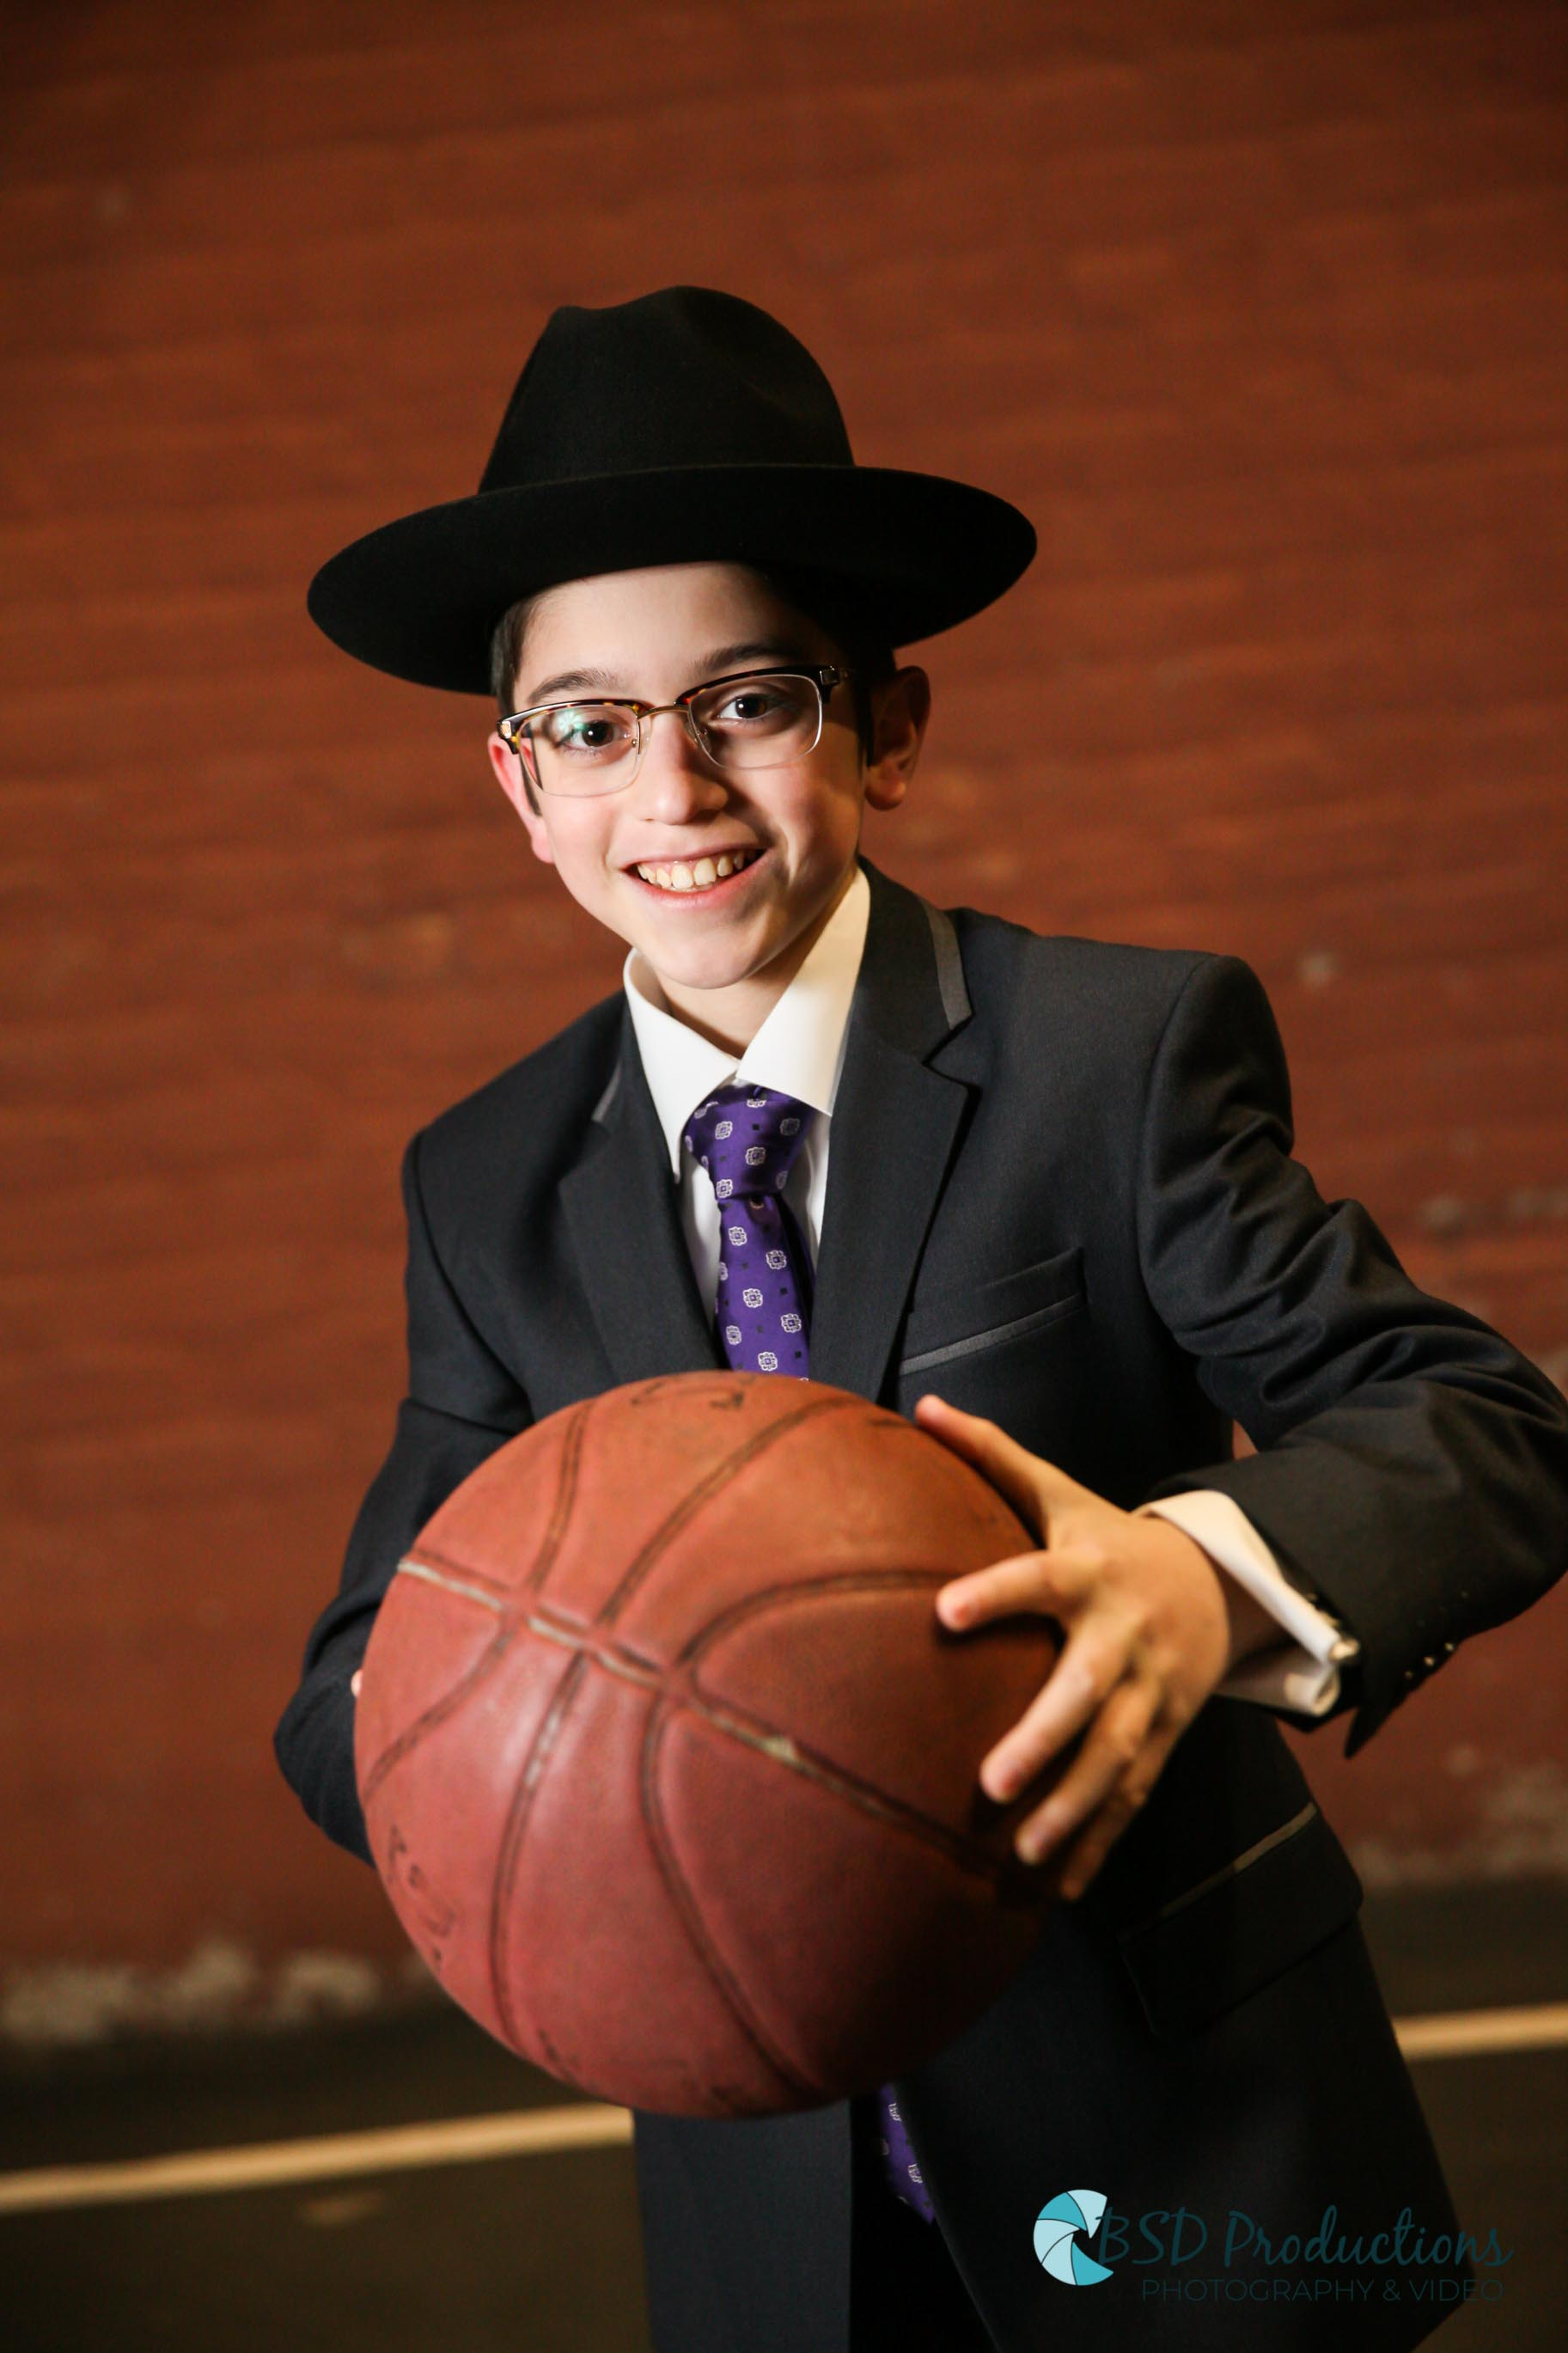 IMG_1104 Bar Mitzvah – BSD Prodcutions Photography